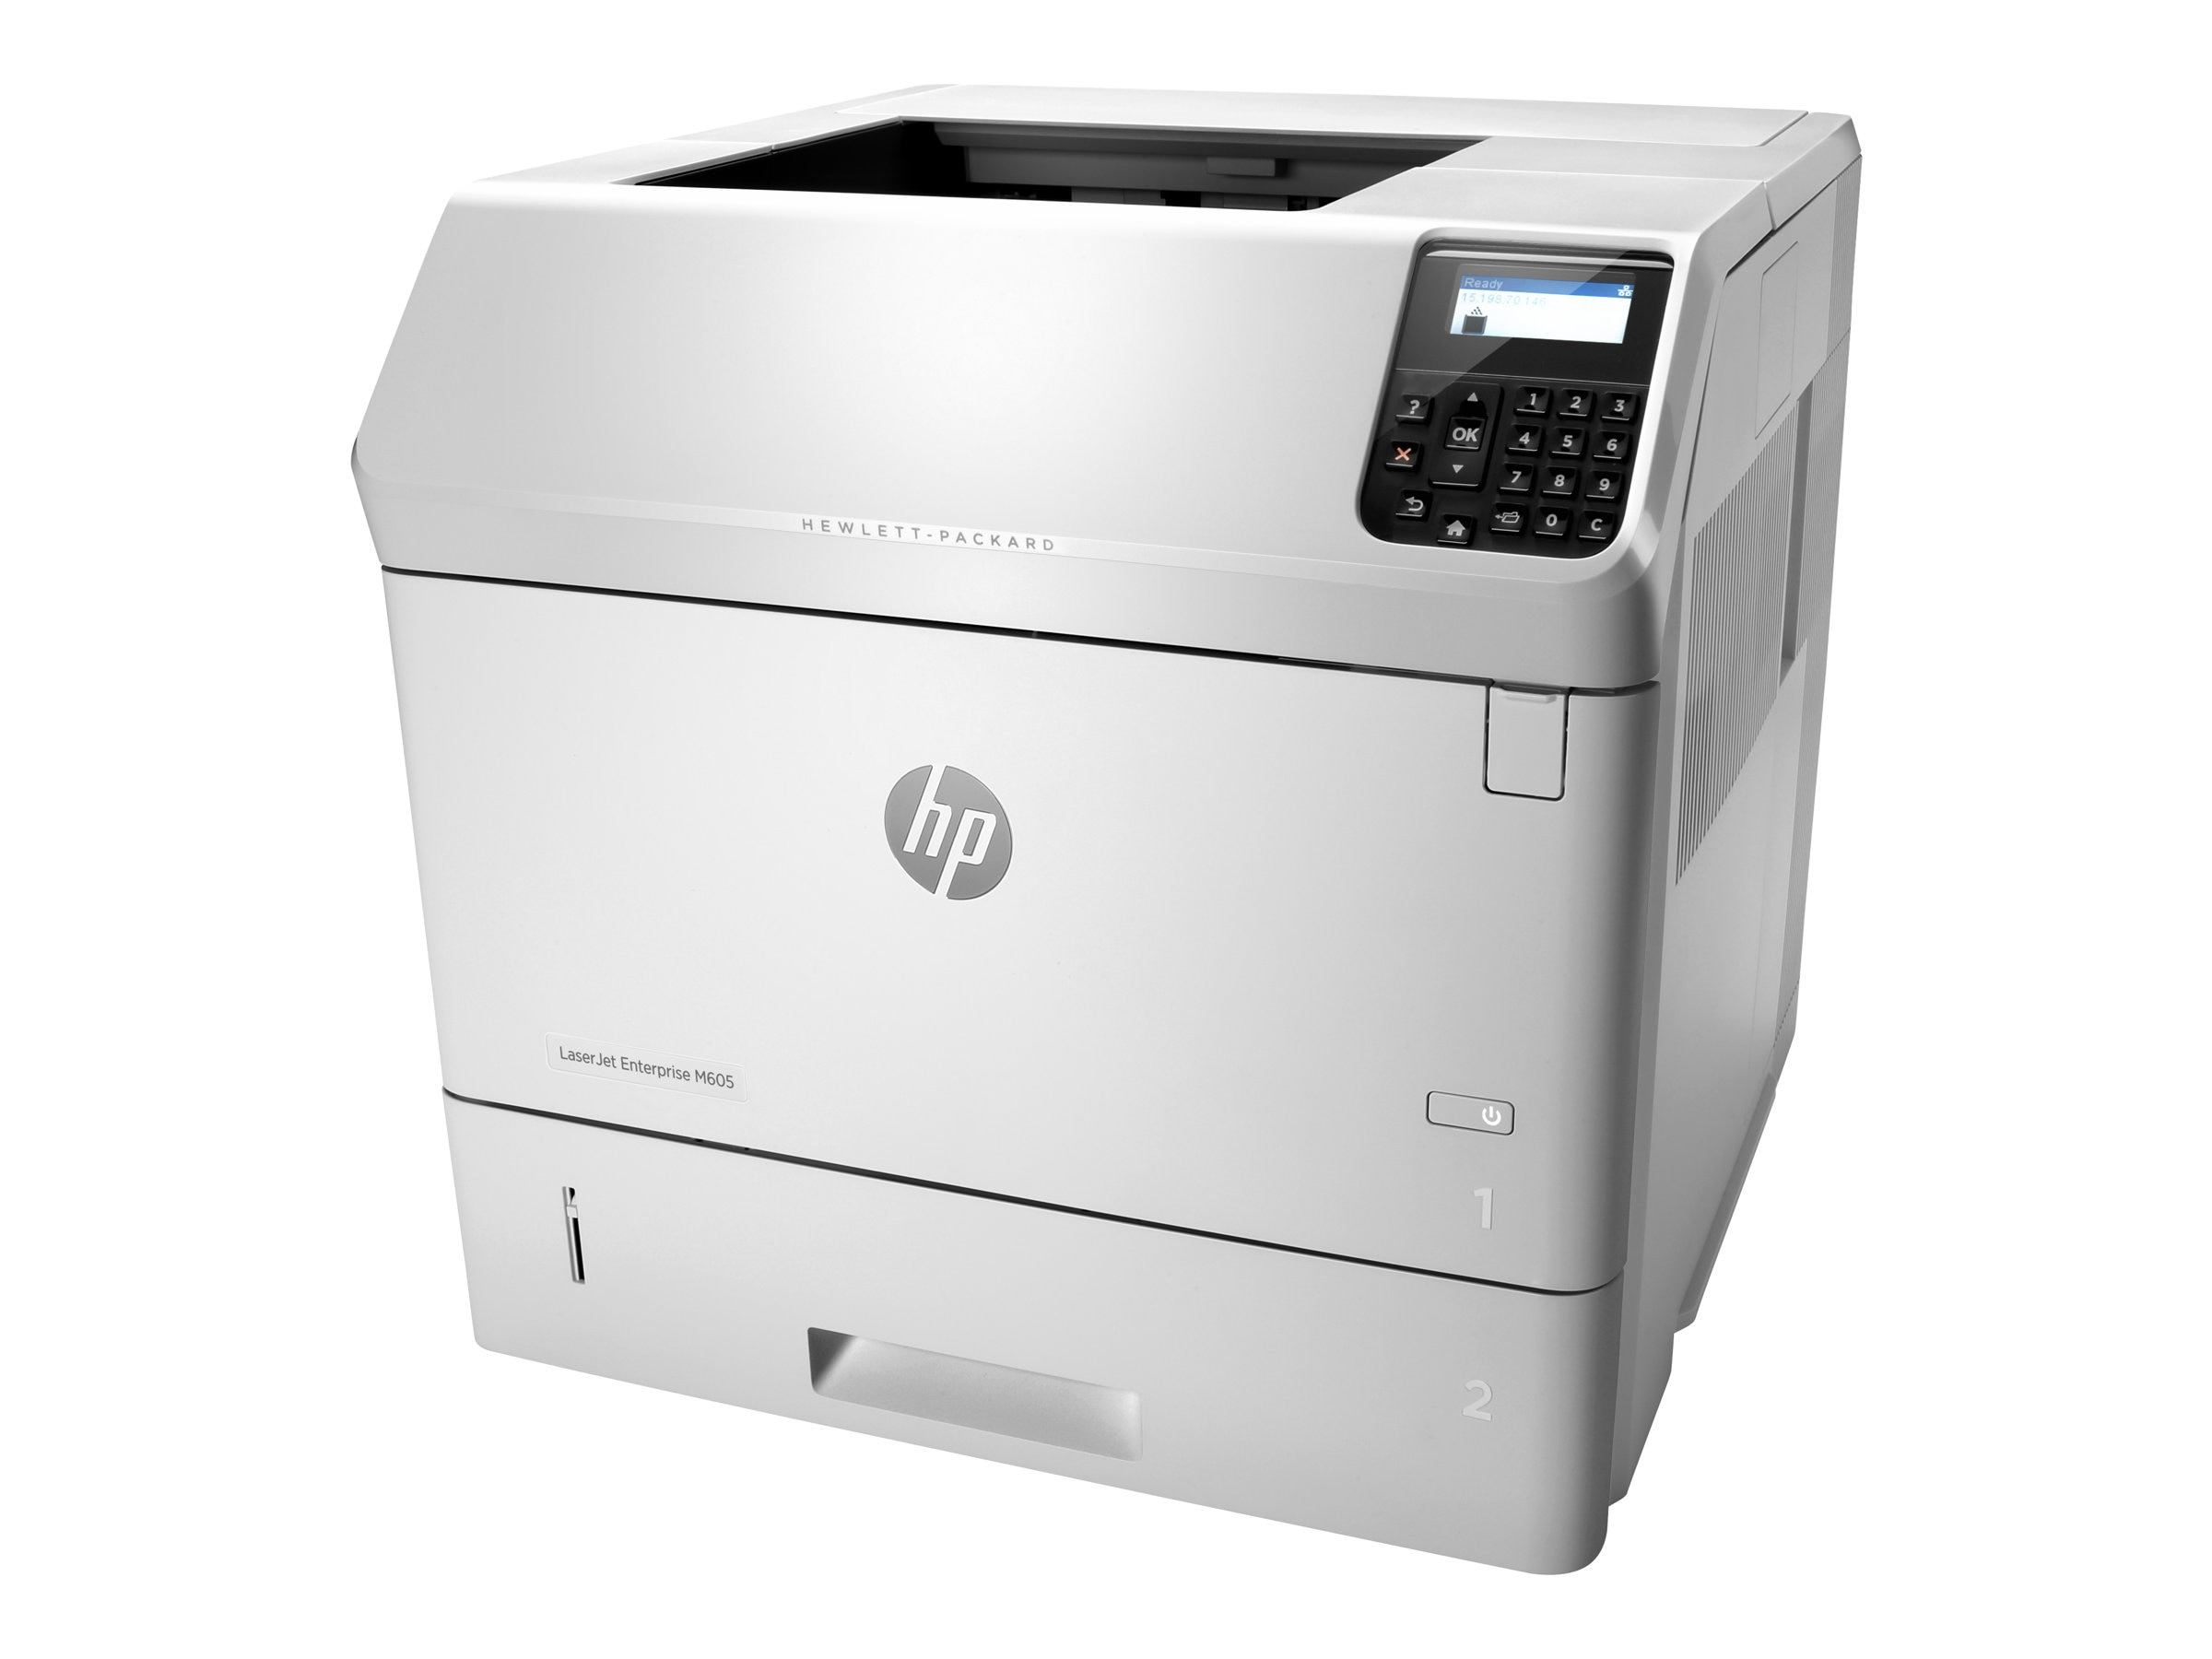 HP LaserJet Enterprise M605dn Printer - 220V, E6B70A#AAZ, 20522308, Printers - Laser & LED (monochrome)